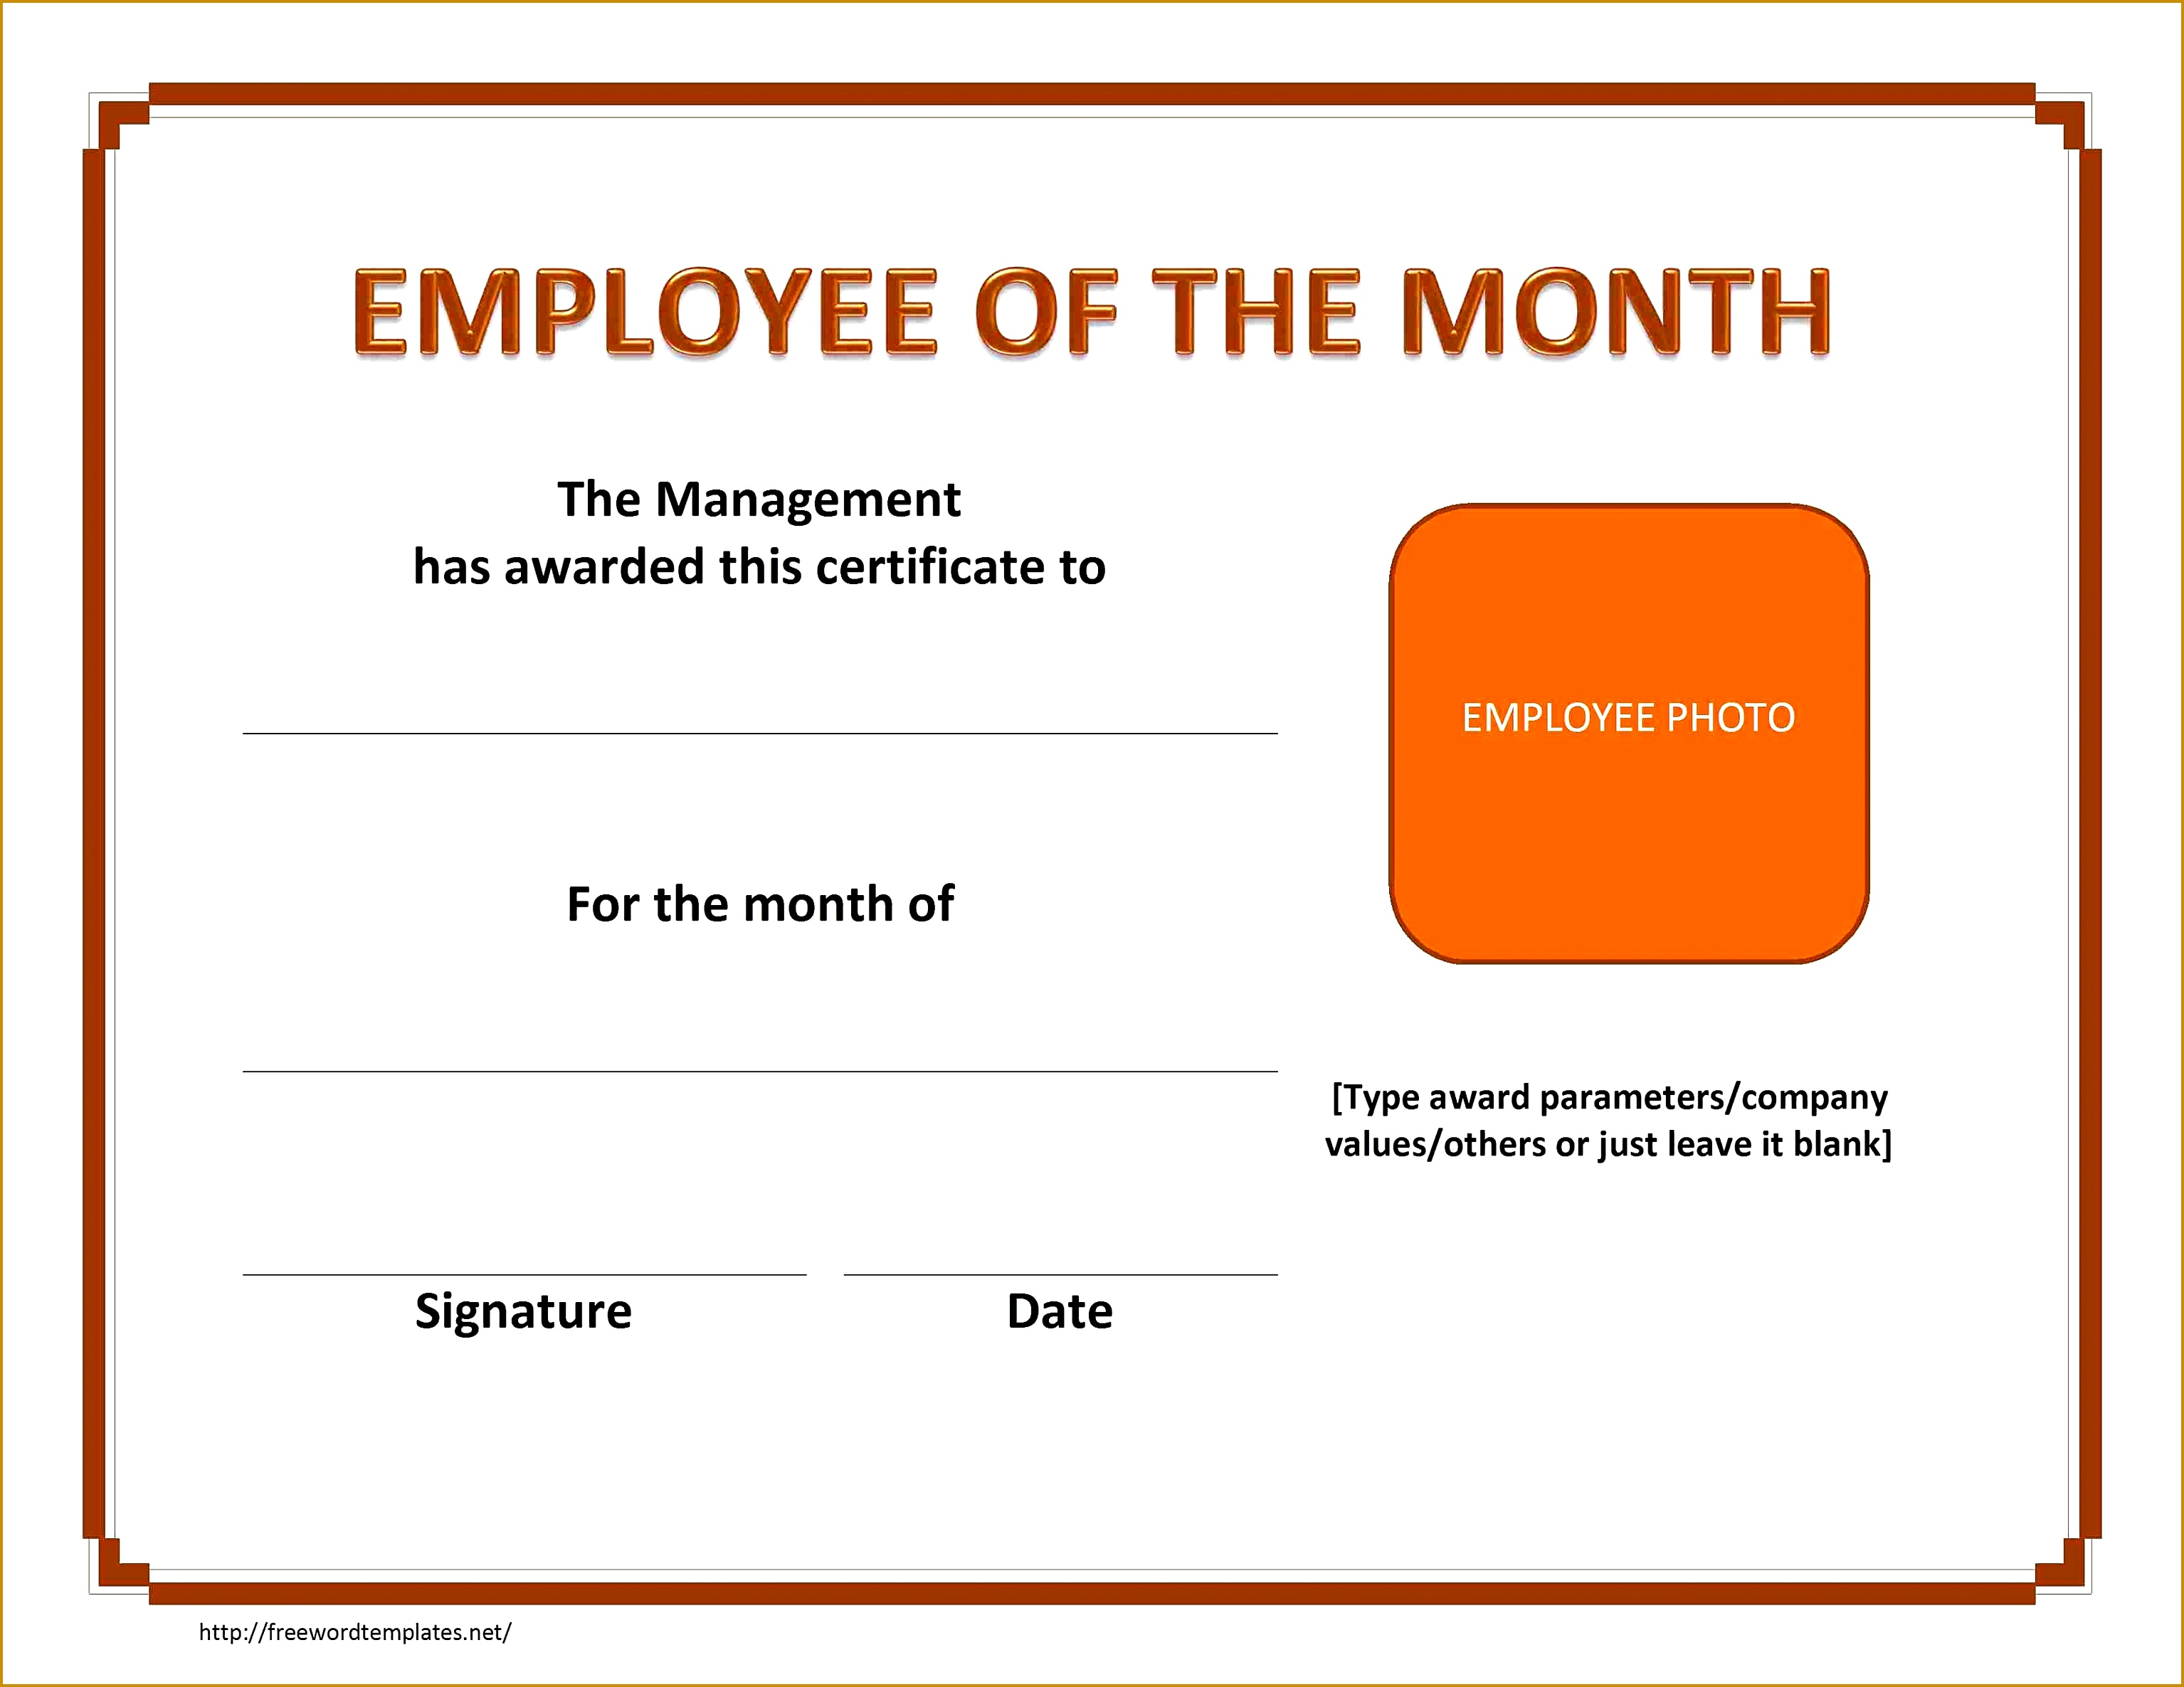 Award Certificates Templates Free Mughals Employee Award Certificate Templates Free How To Write A Personal Business Forms Example Brochures Downloads Word 23713069